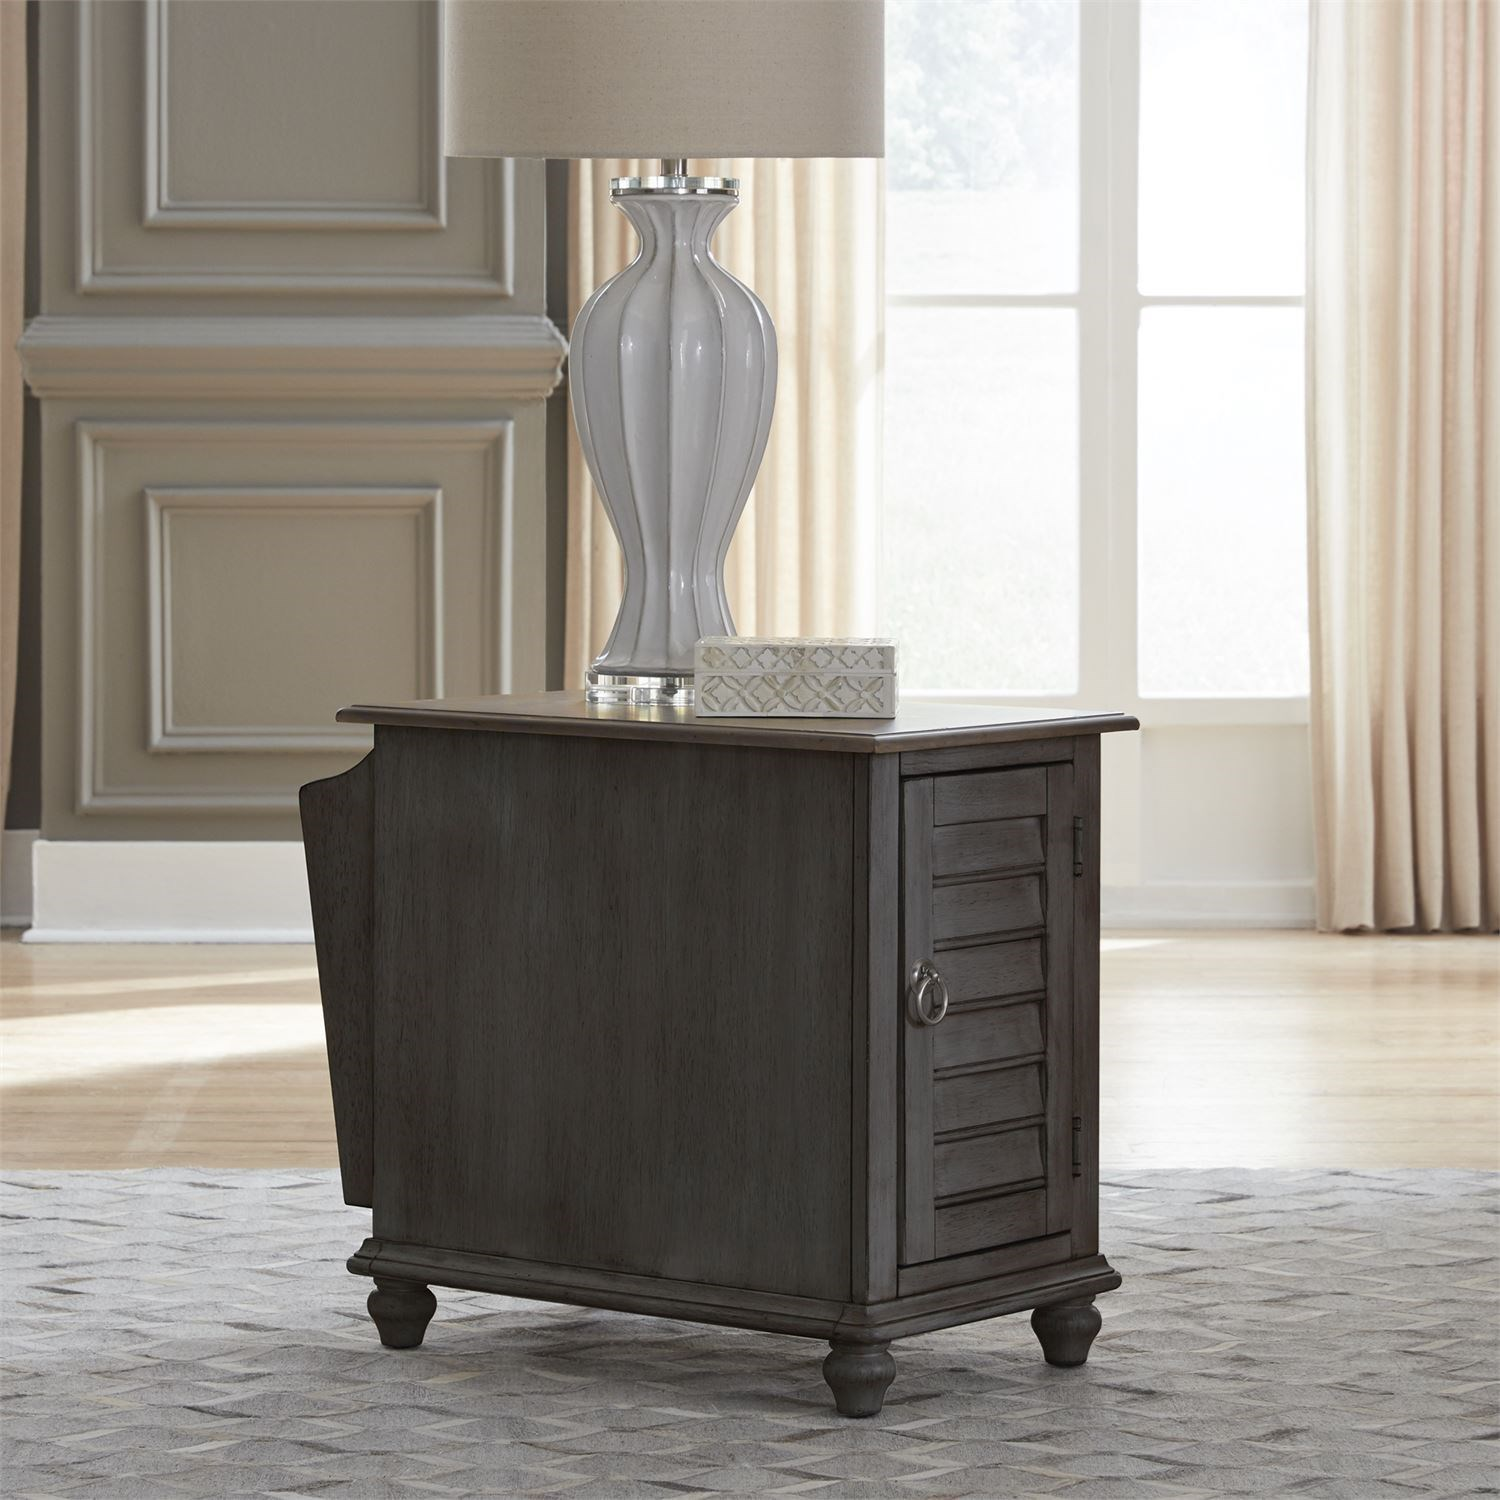 Ocean Isle Chairside Table by Liberty Furniture at Darvin Furniture